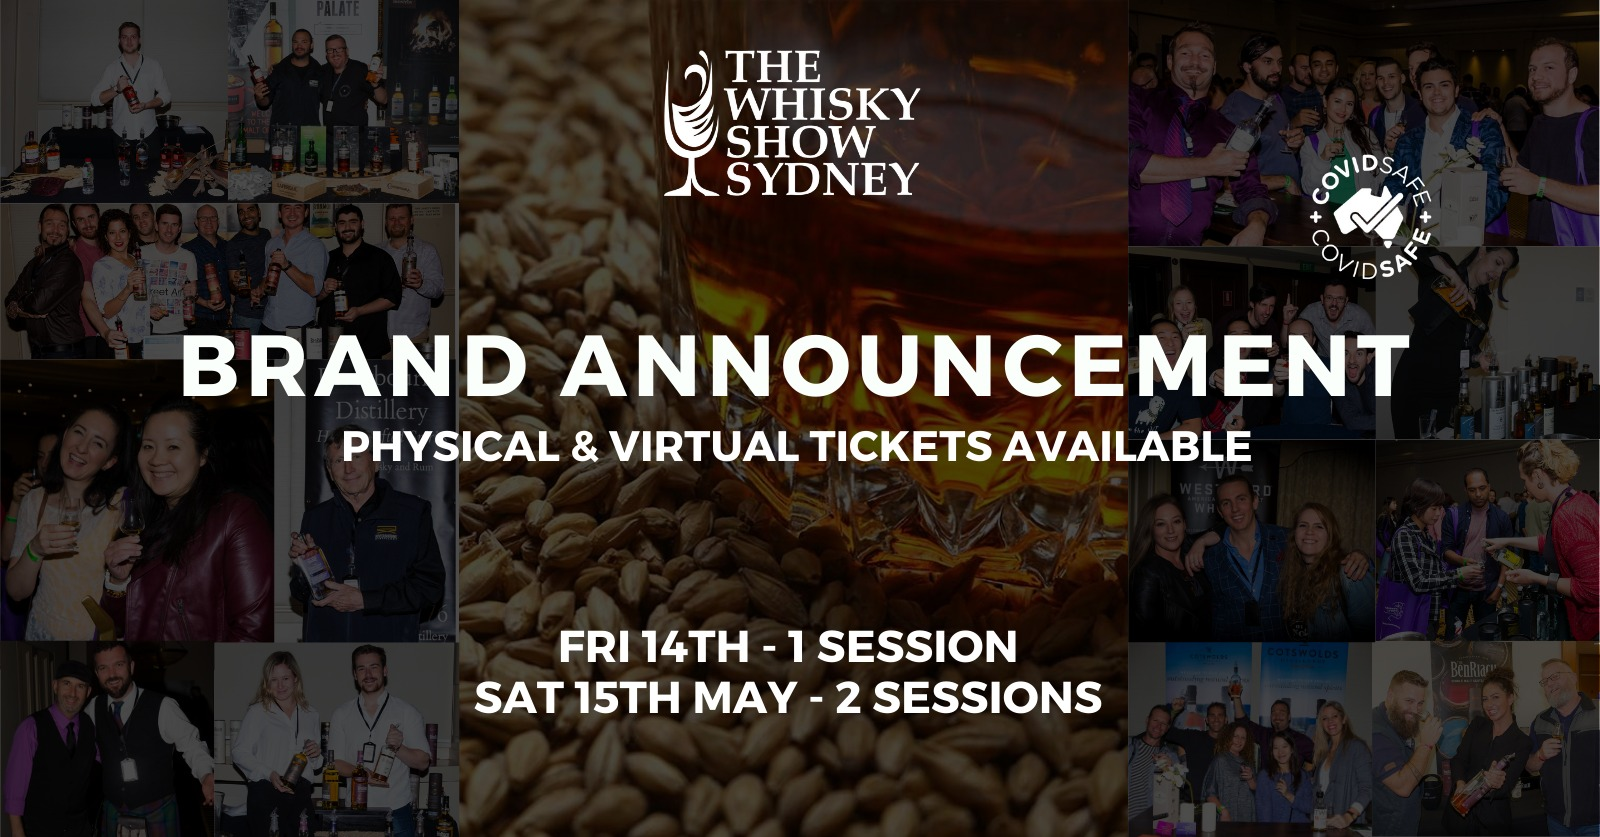 Whisky you'll taste at The Whisky Show!